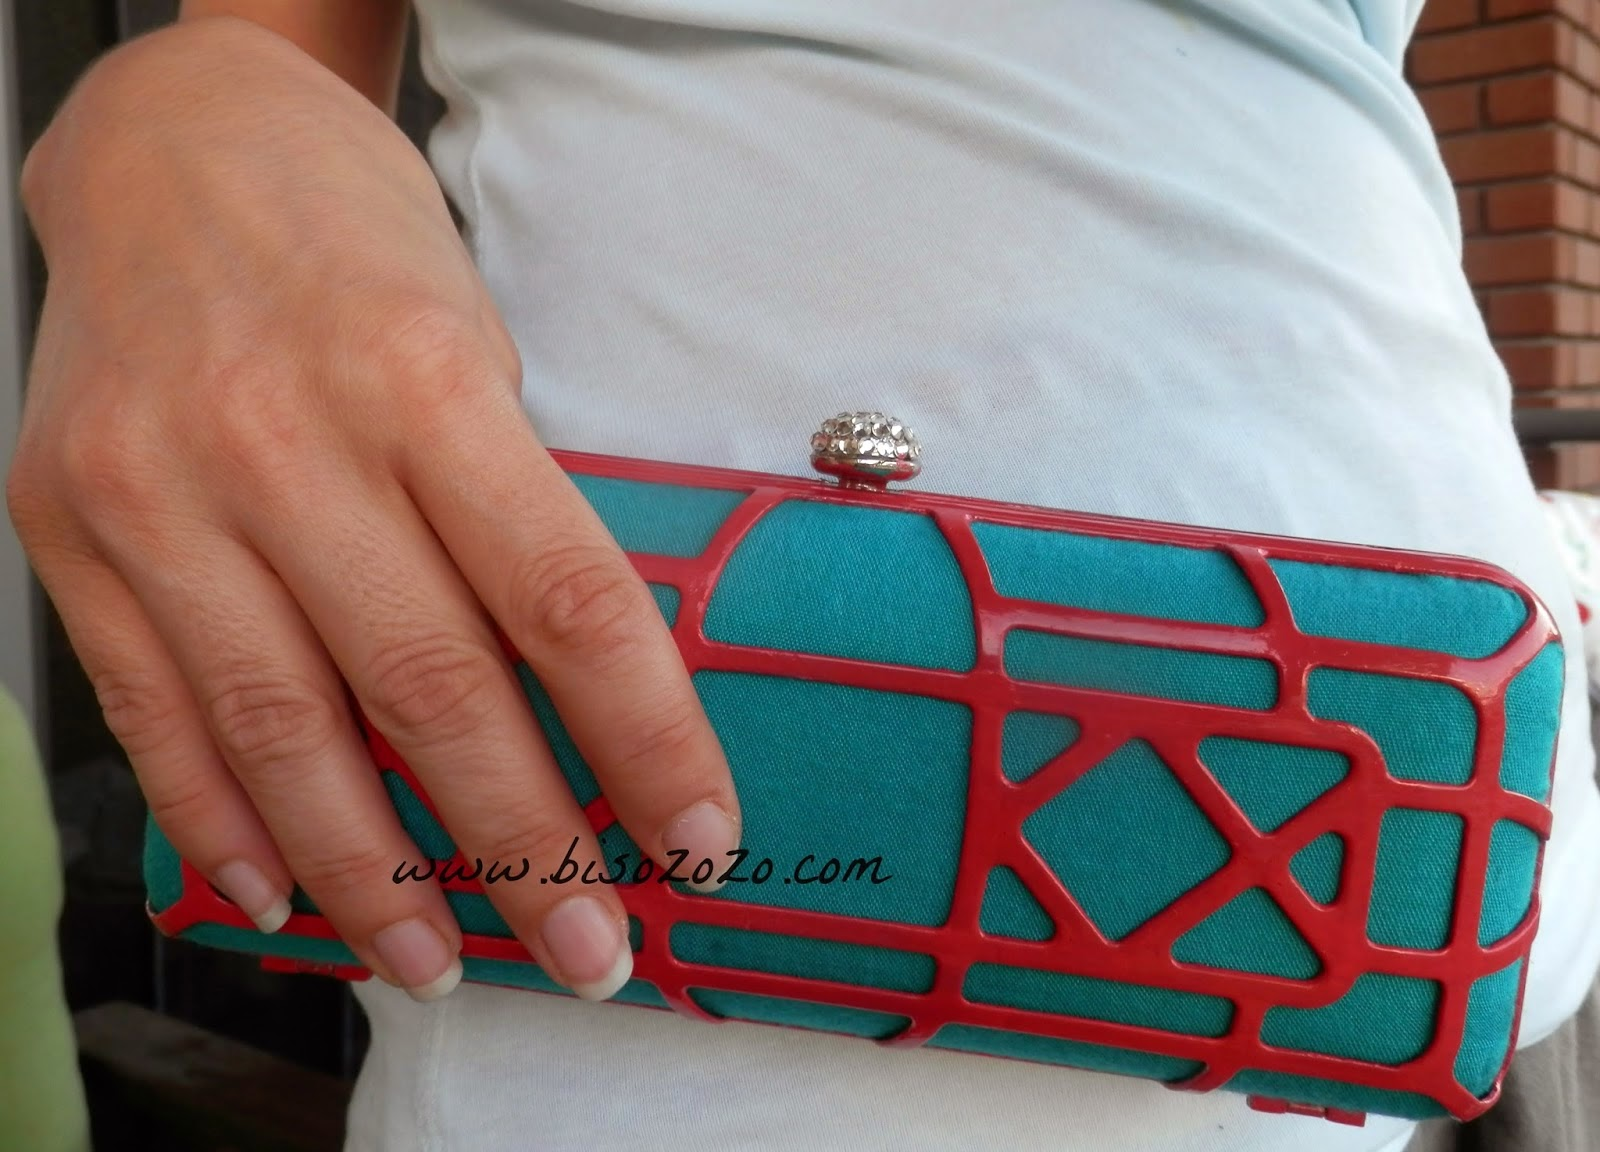 http://www.bisozozo.com/2014/06/nail-polish-and-fabric-clutch-retouch.html